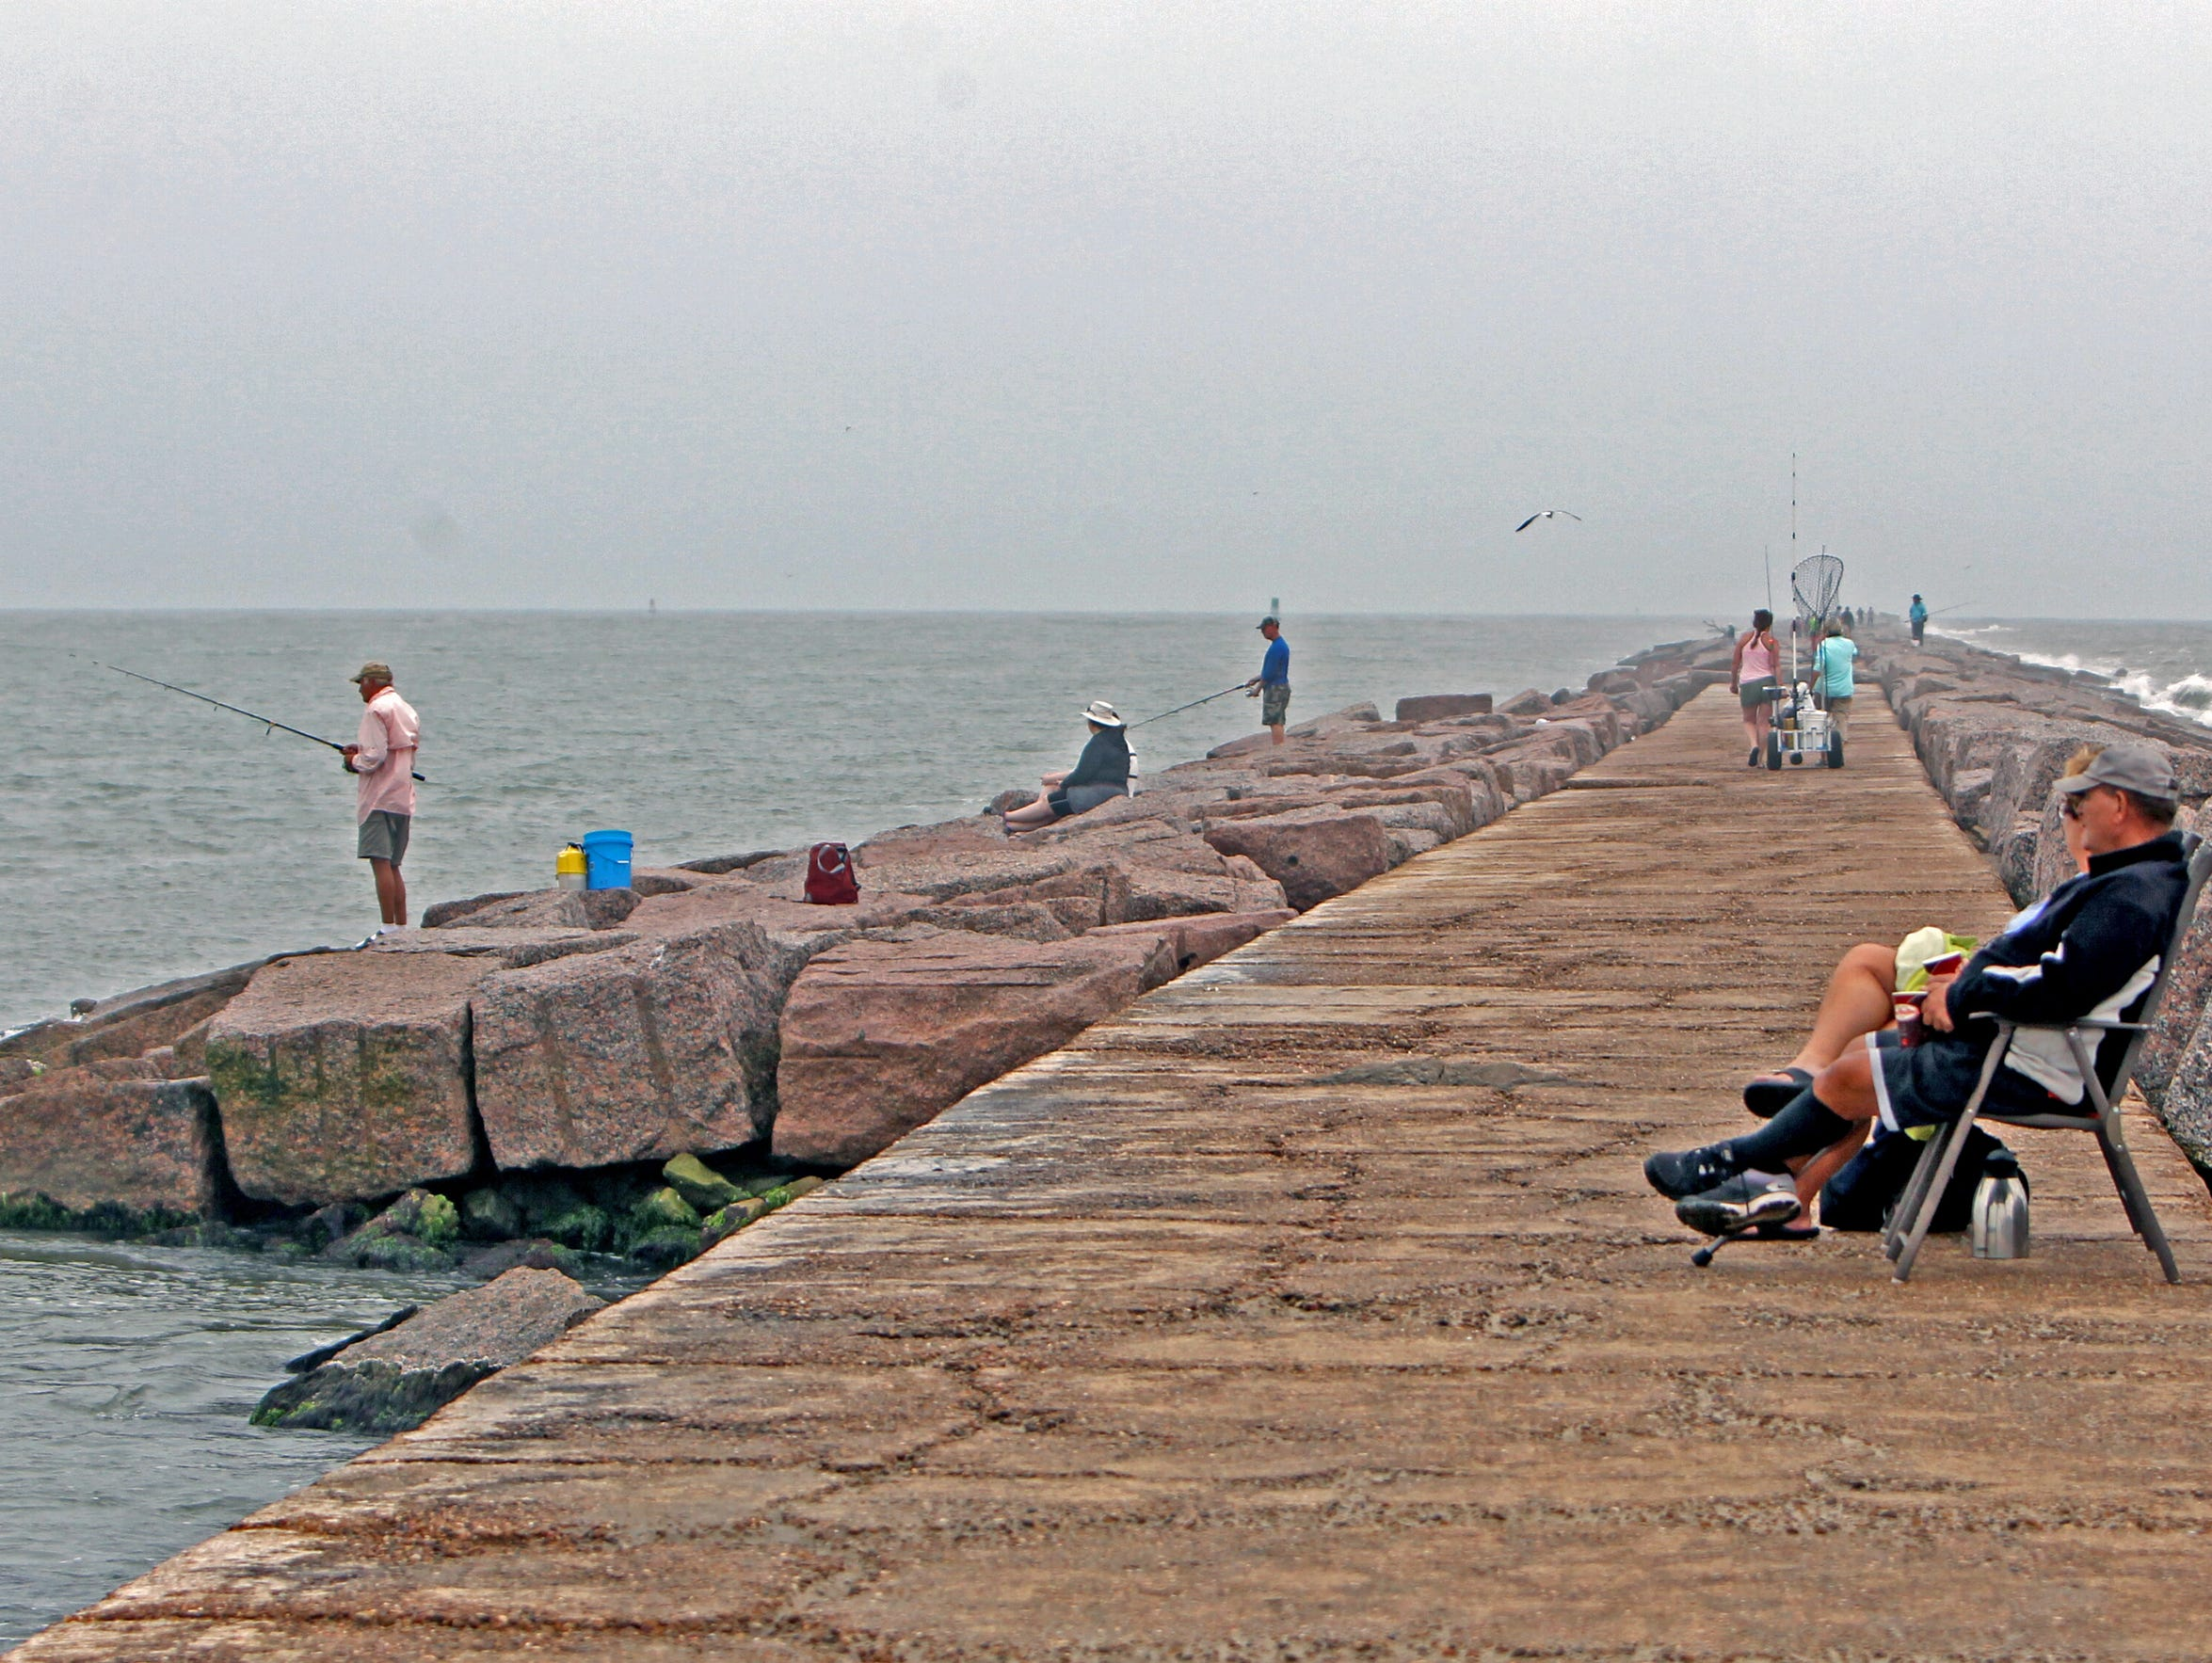 Top Spots For Pier Jetty Fishing From Corpus Christi To